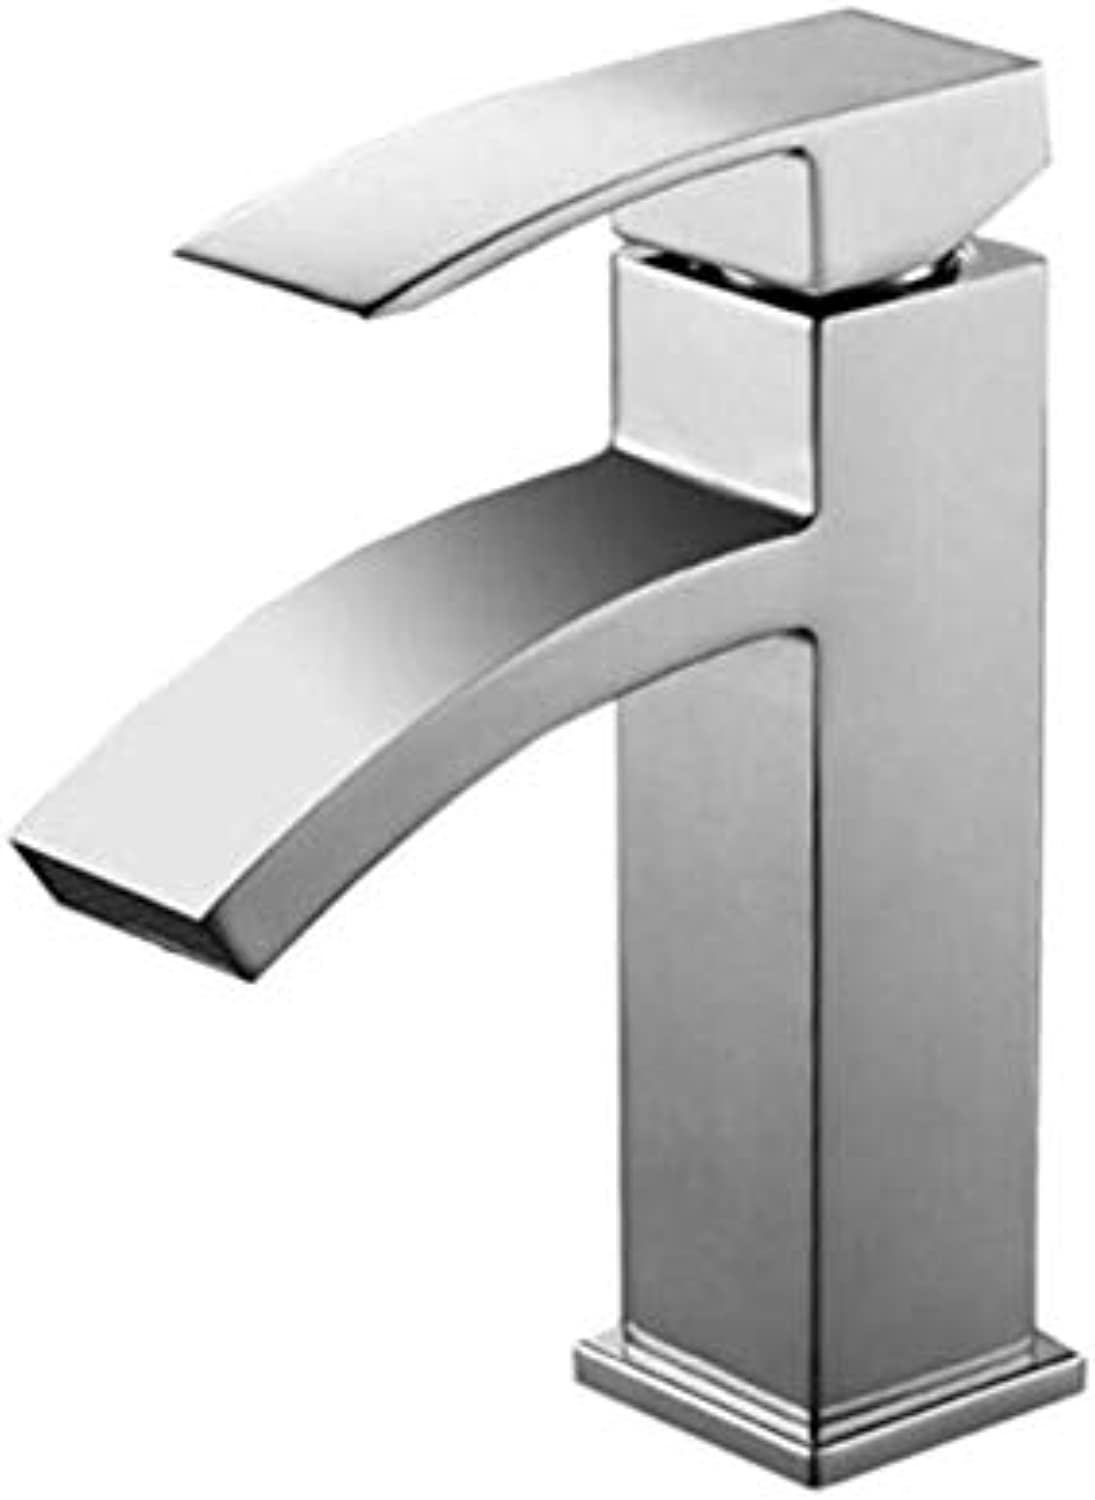 Taps Kitchen Sinktaps Mixer Swivel Faucet Sink Hot and Cold Washbasin Single-Hole